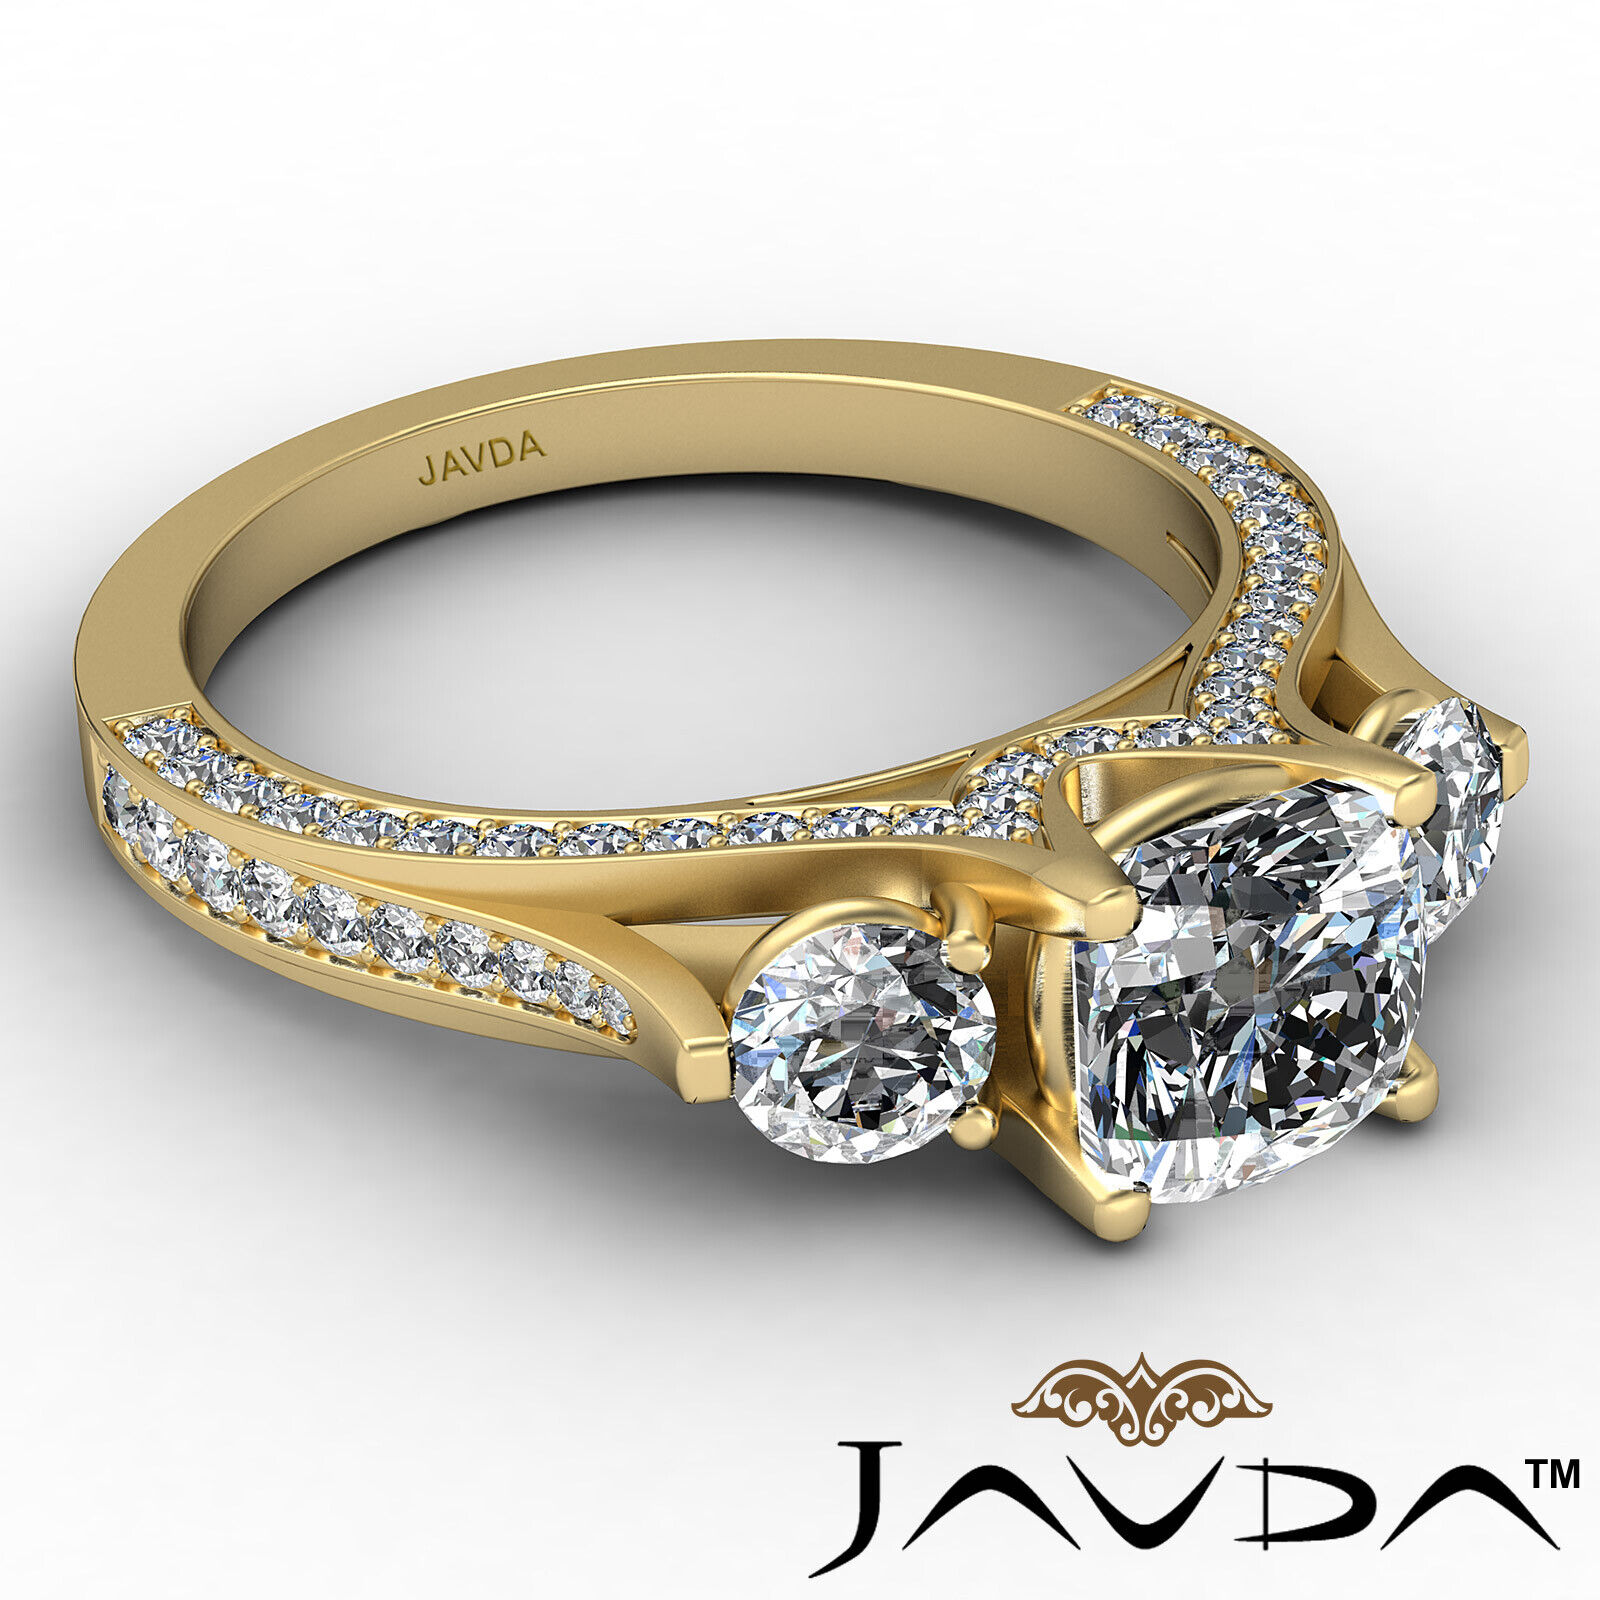 Cushion Diamond Engagement Ring Certified by GIA E Color & VVS1 clarity 2.1 ctw 7